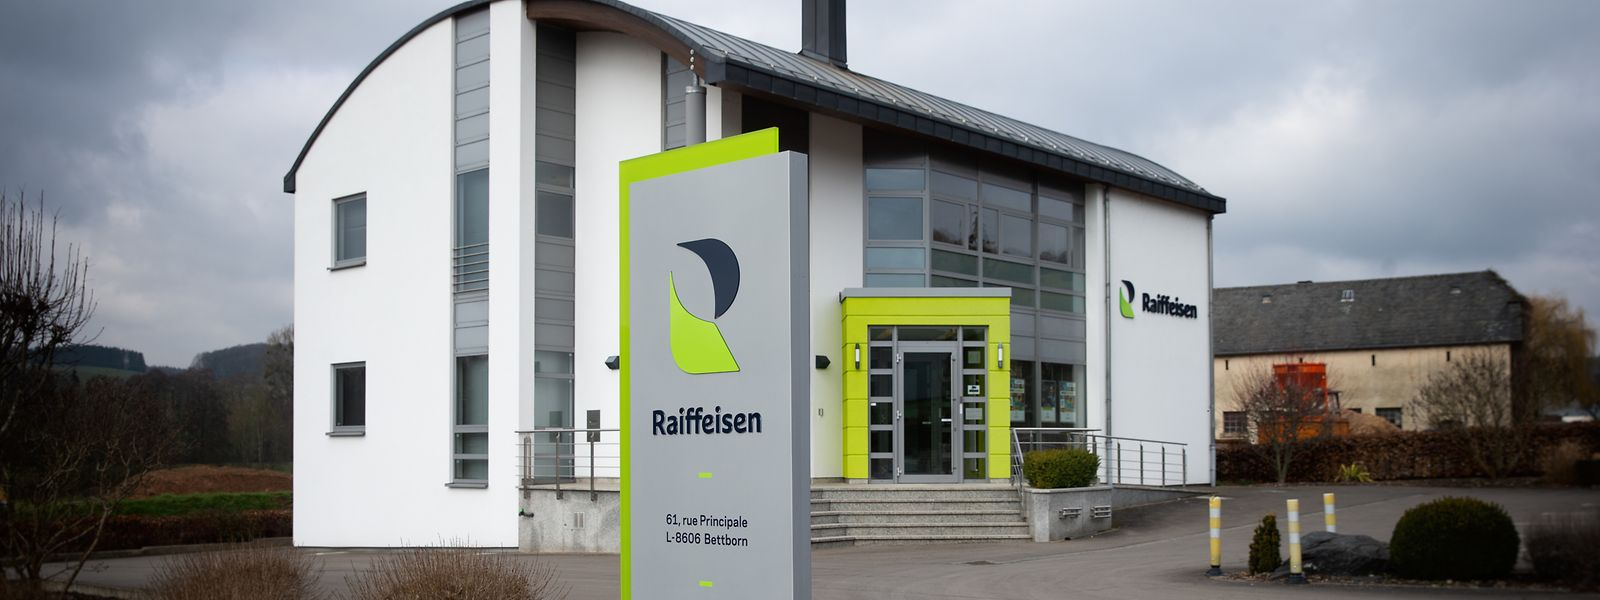 Die Raiffeisenkasse in Bettborn.